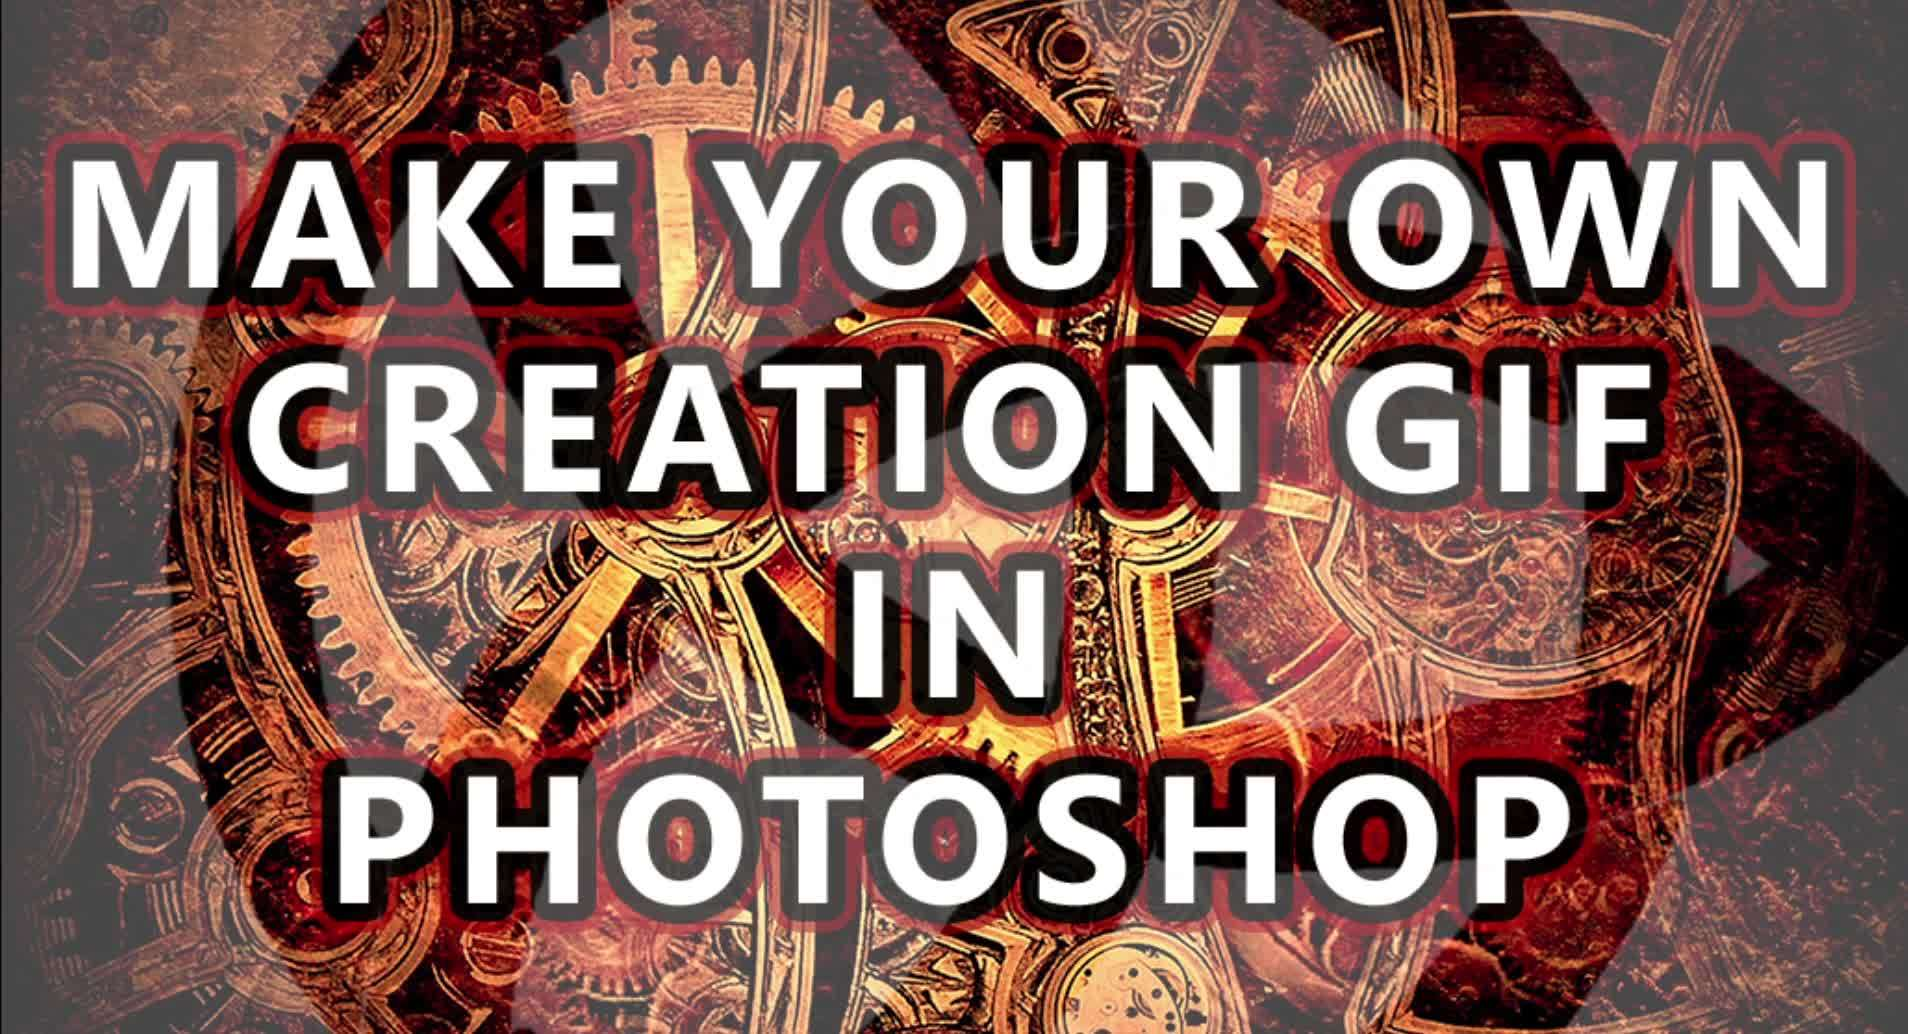 #CreationGifs, CreationGifs, Make a Creation GIF in Photoshop [No Video Recording Software] GIFs